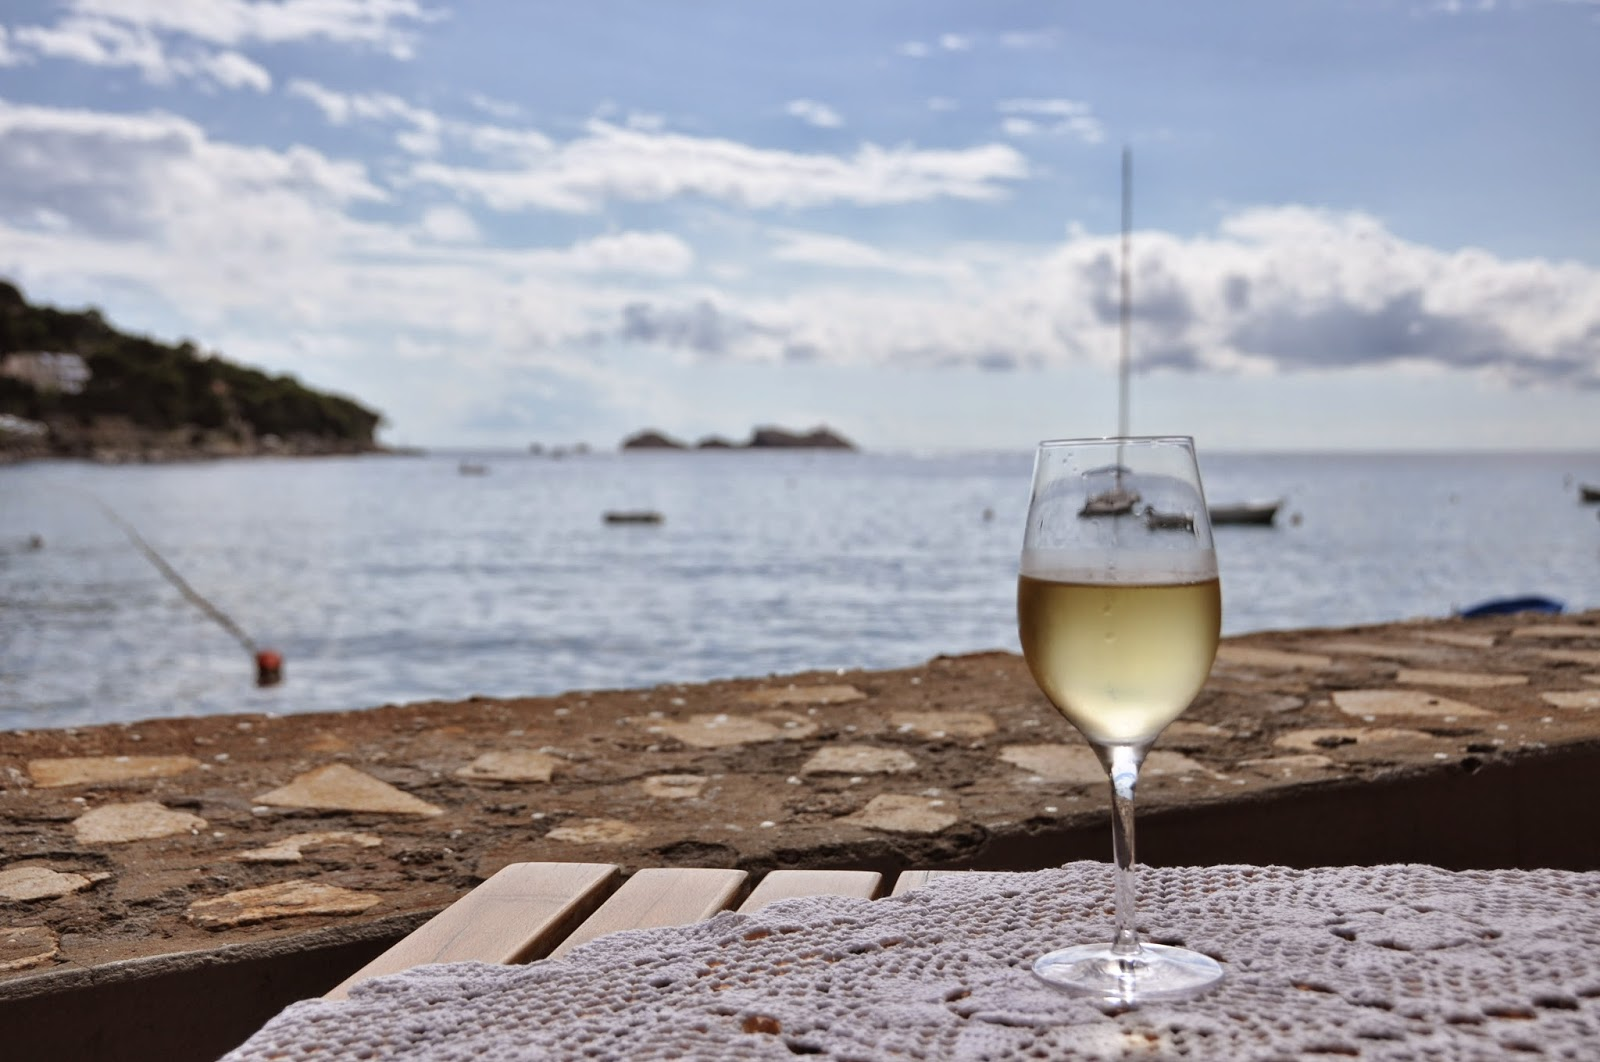 Croatian White Wine, Lapad Bay, Dubrovnik